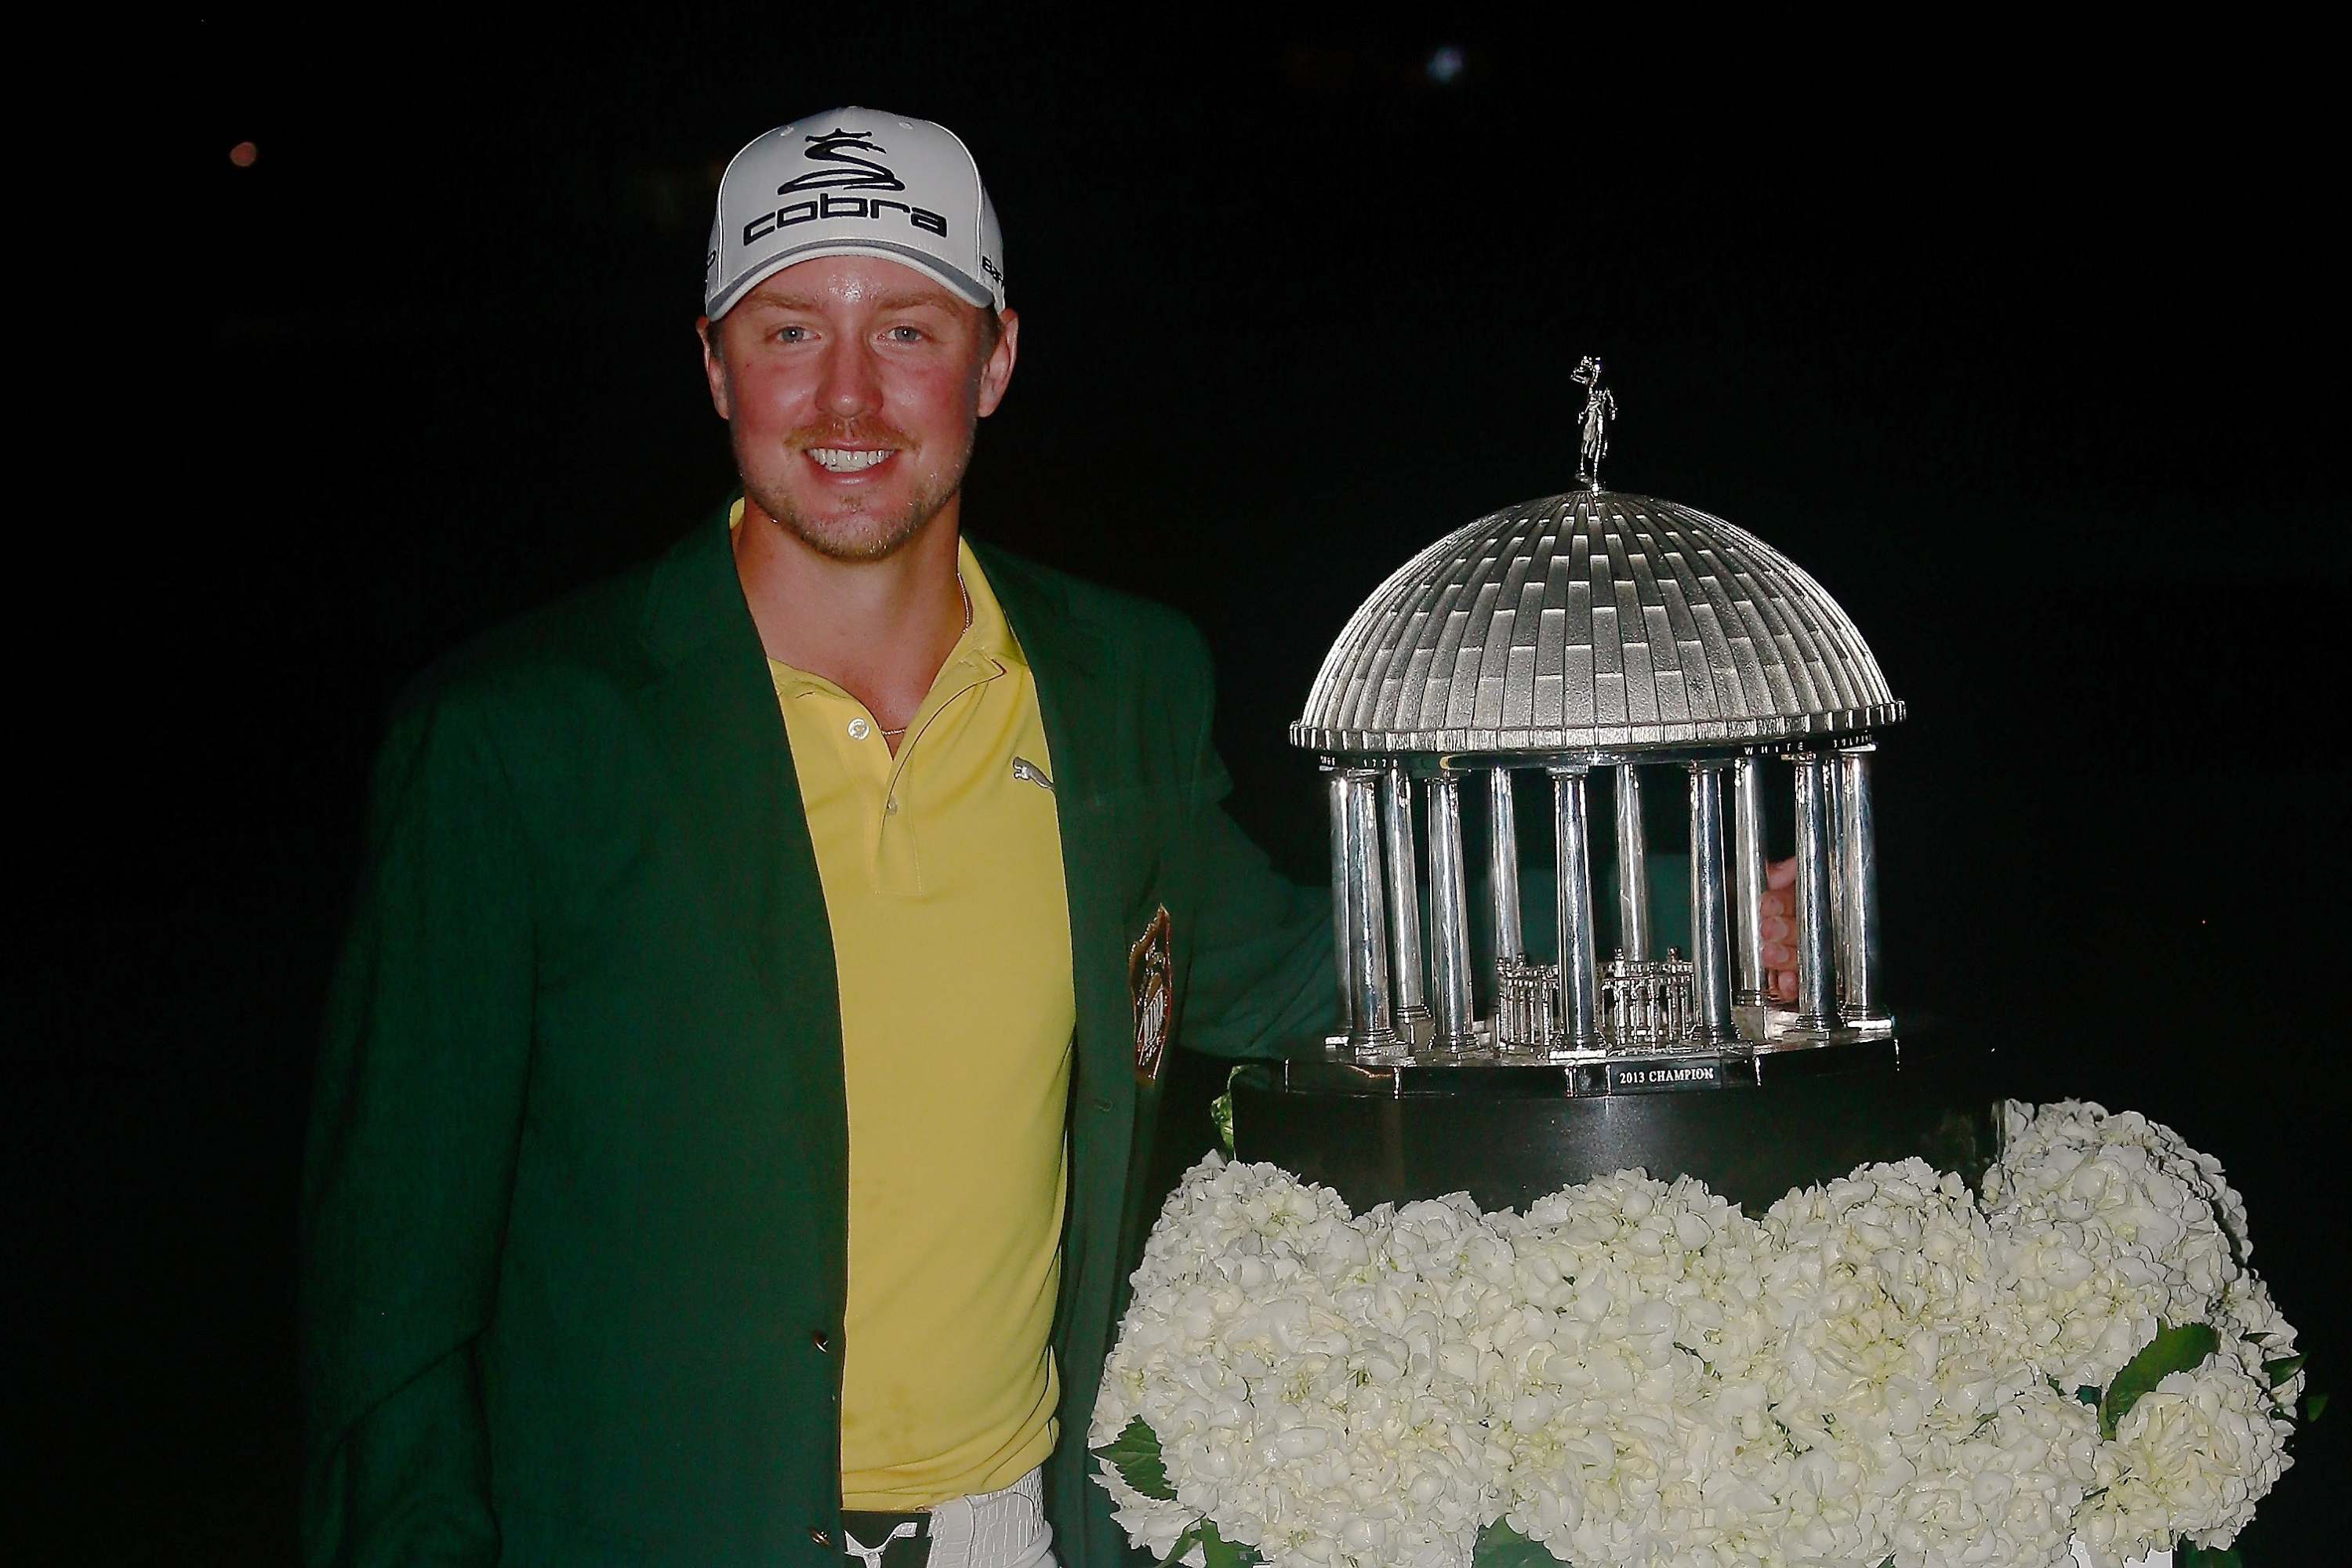 Jonas Blixt of Sweden poses with the trophy following his victory in the Greenbrier Classic. (Getty)